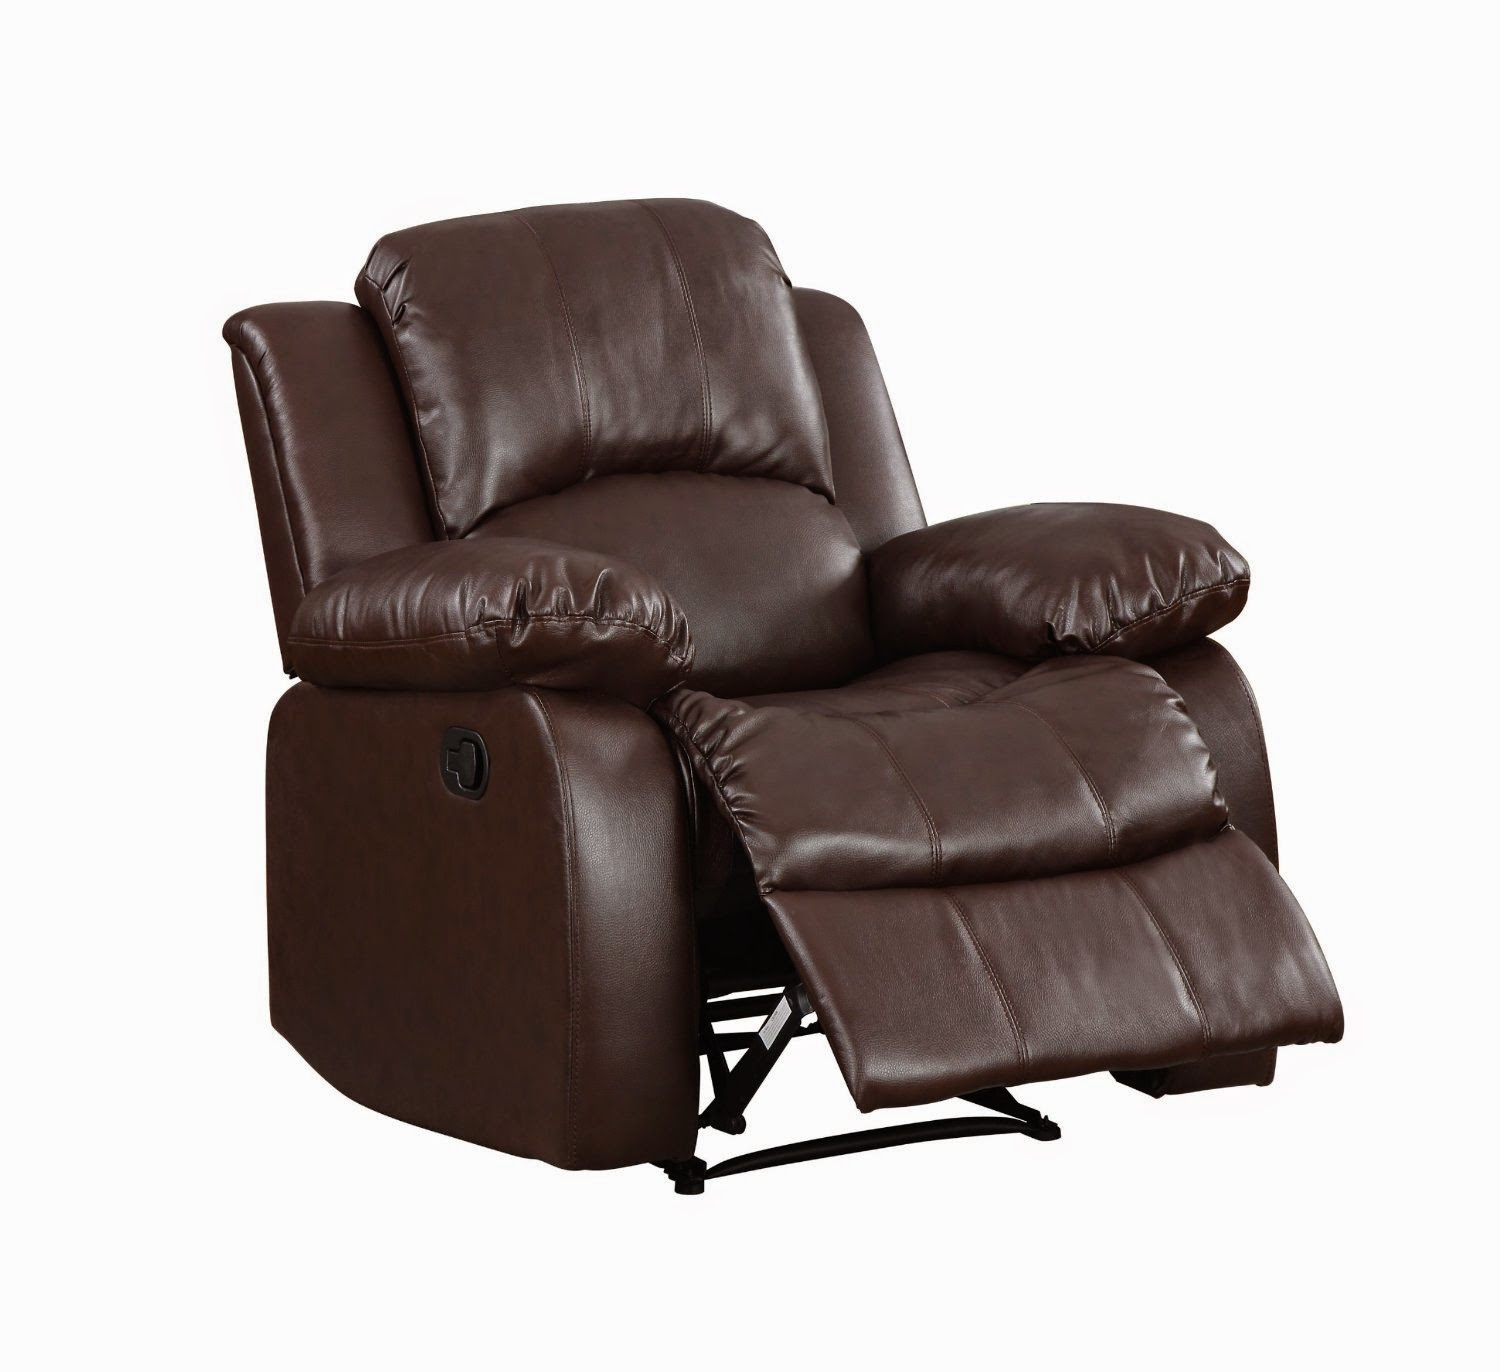 Leather Power Reclining Sofa At Costco: Best Leather Reclining Sofa Brands Reviews: Costco Leather